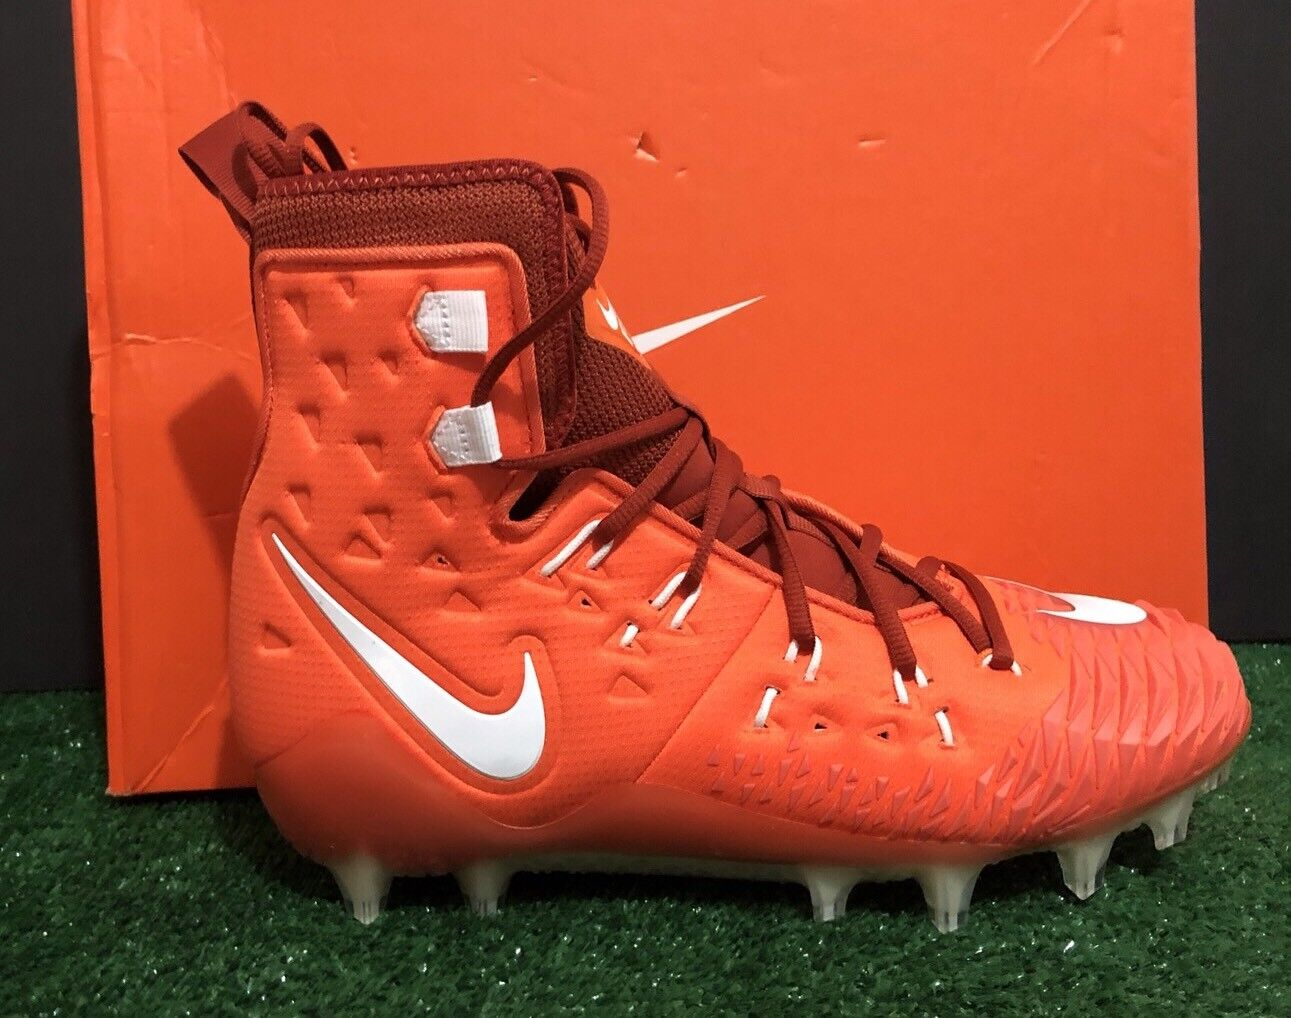 441640dbd56 NIKE FORCE SAVAGE ELITE TD FOOTBALL CLEATS CLEATS CLEATS 857063-816 orange  MEN SIZE 10.5 ef0357